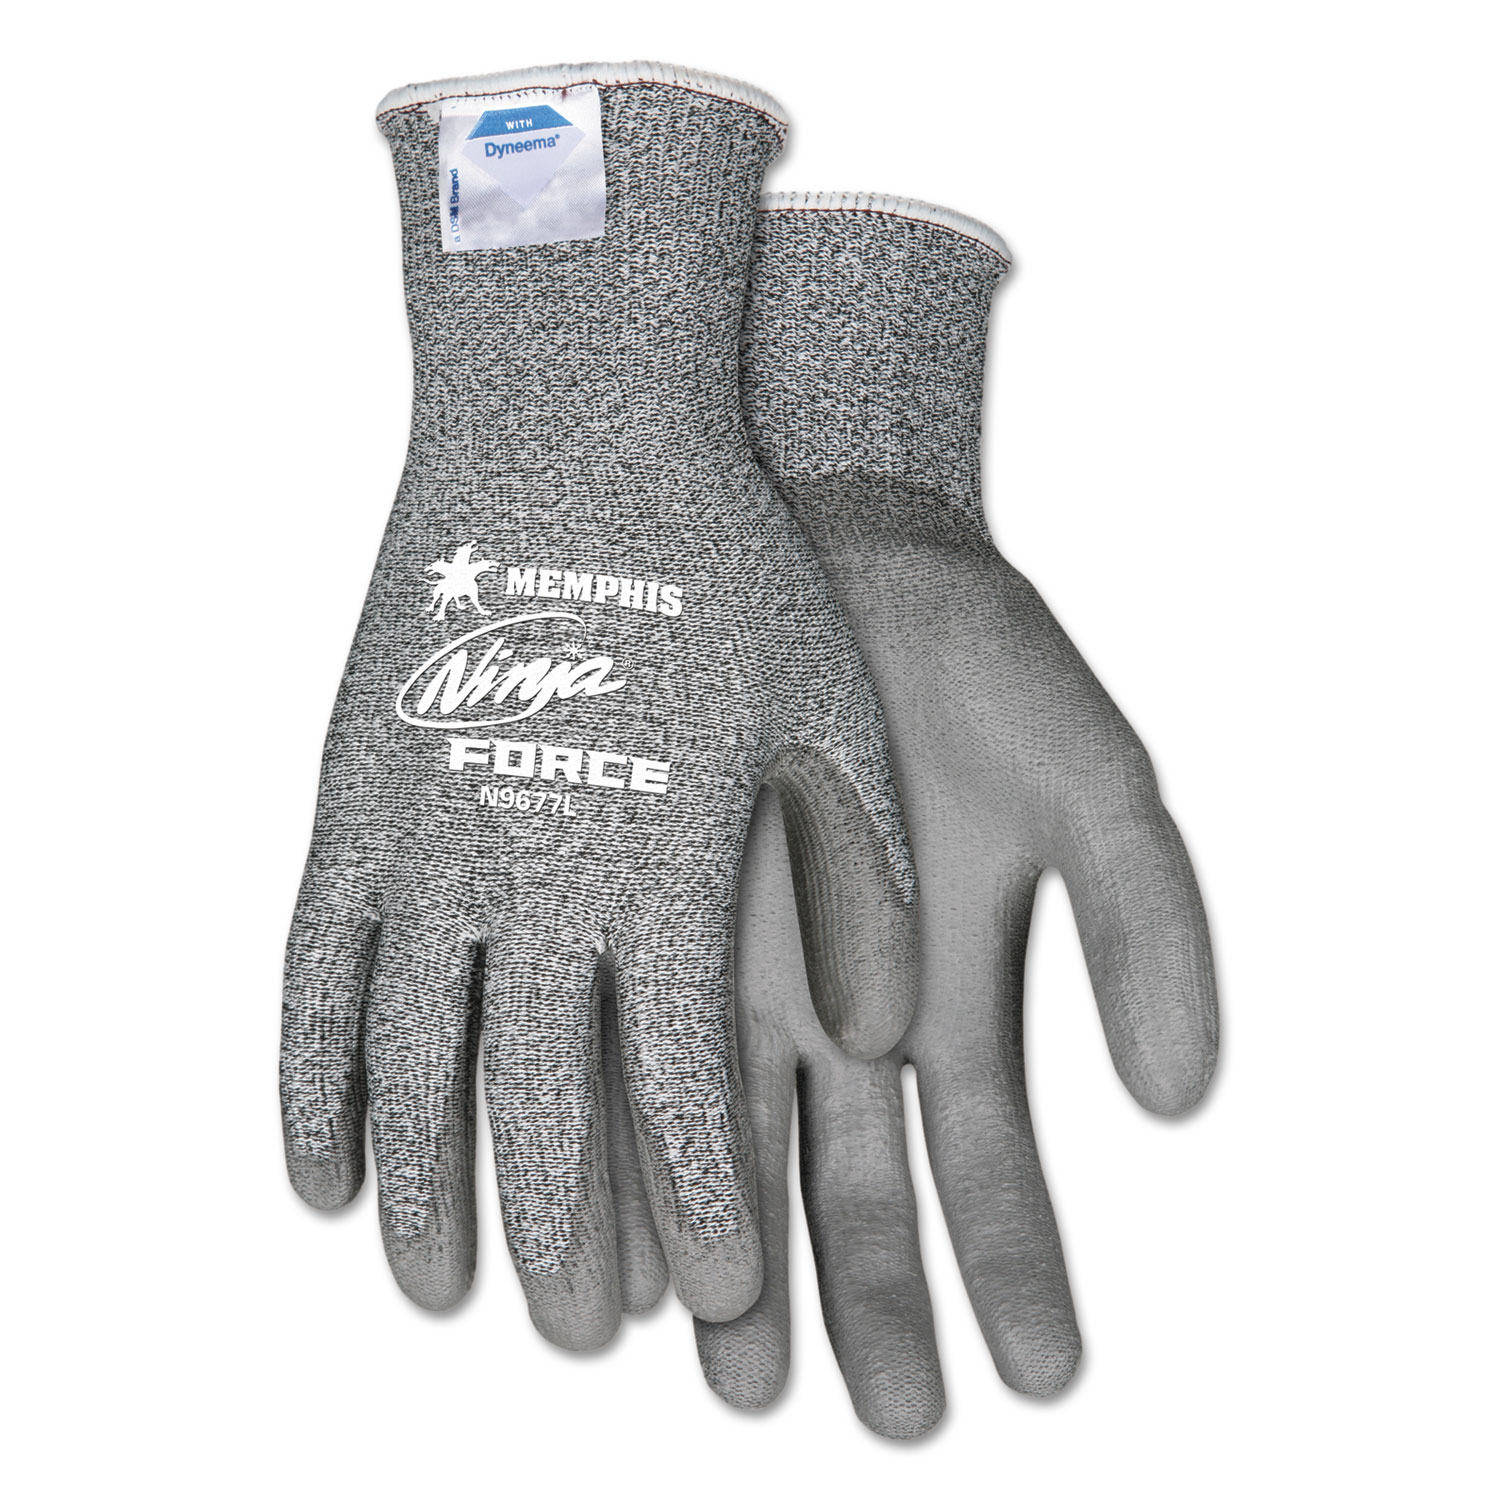 Ninja Force Polyurethane Coated Gloves, Small, Gray, Pair